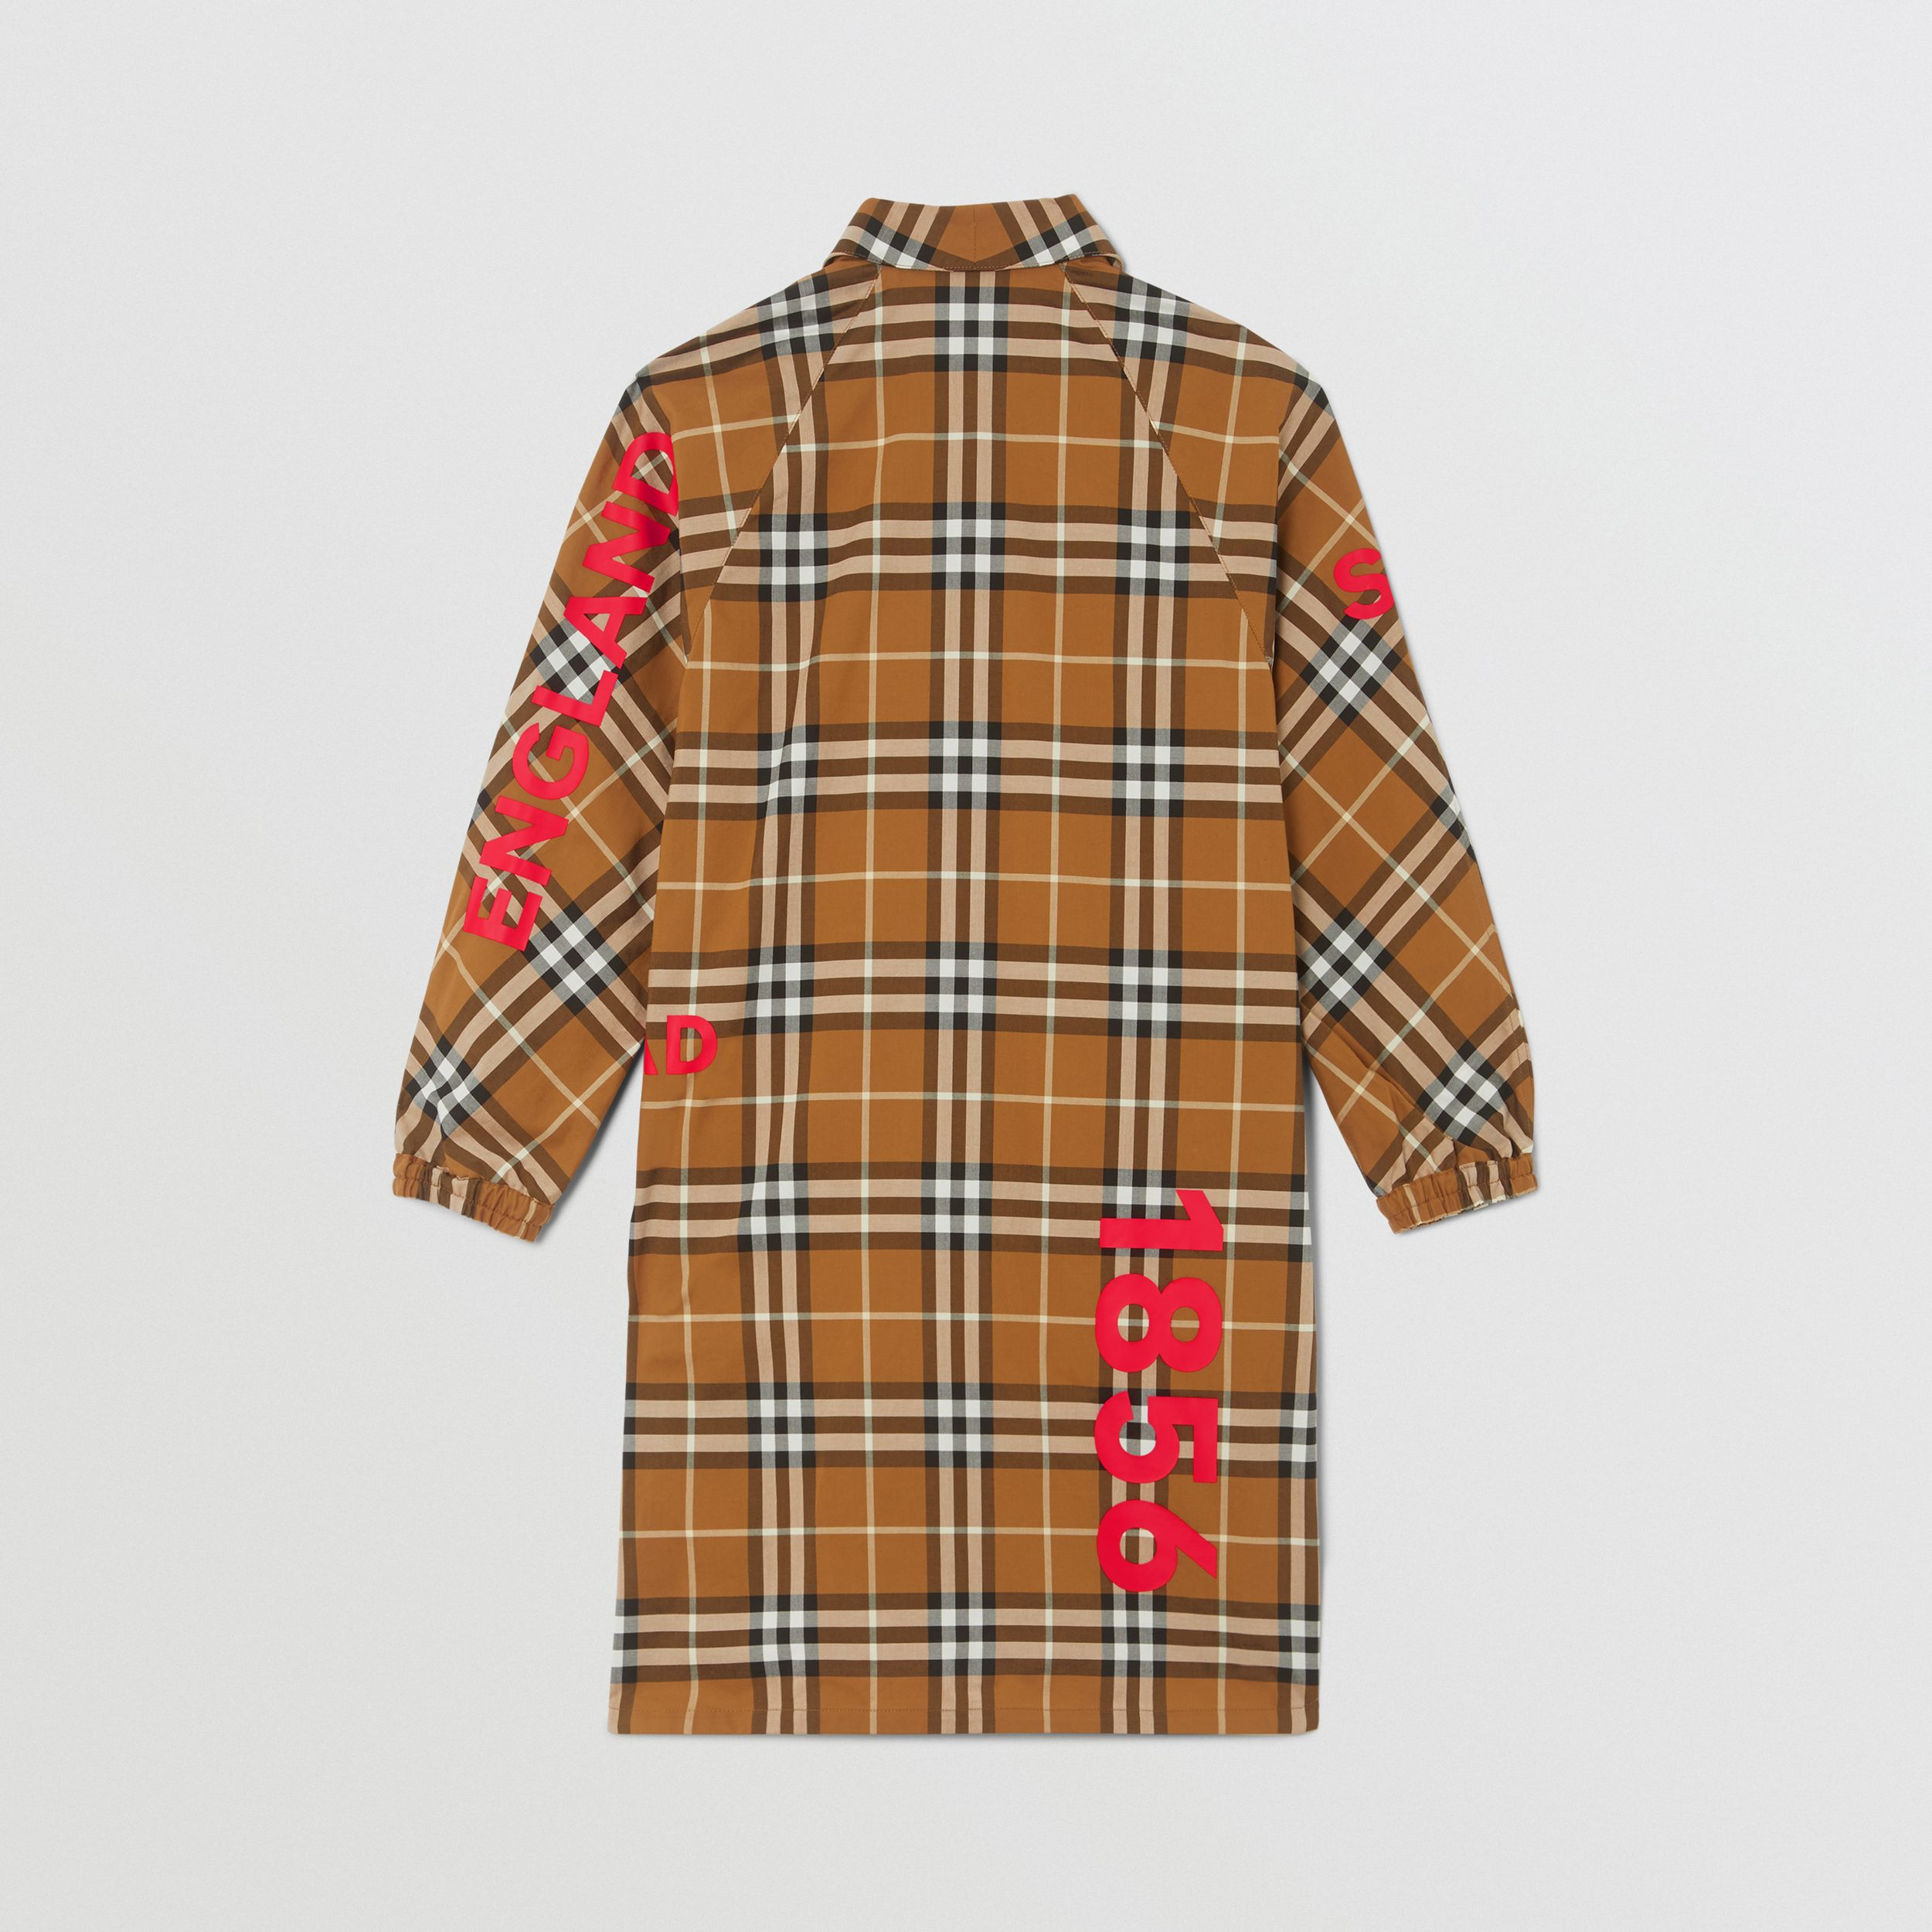 Horseferry Print Check Cotton Shirt Dress in Warm Walnut | Burberry - 4